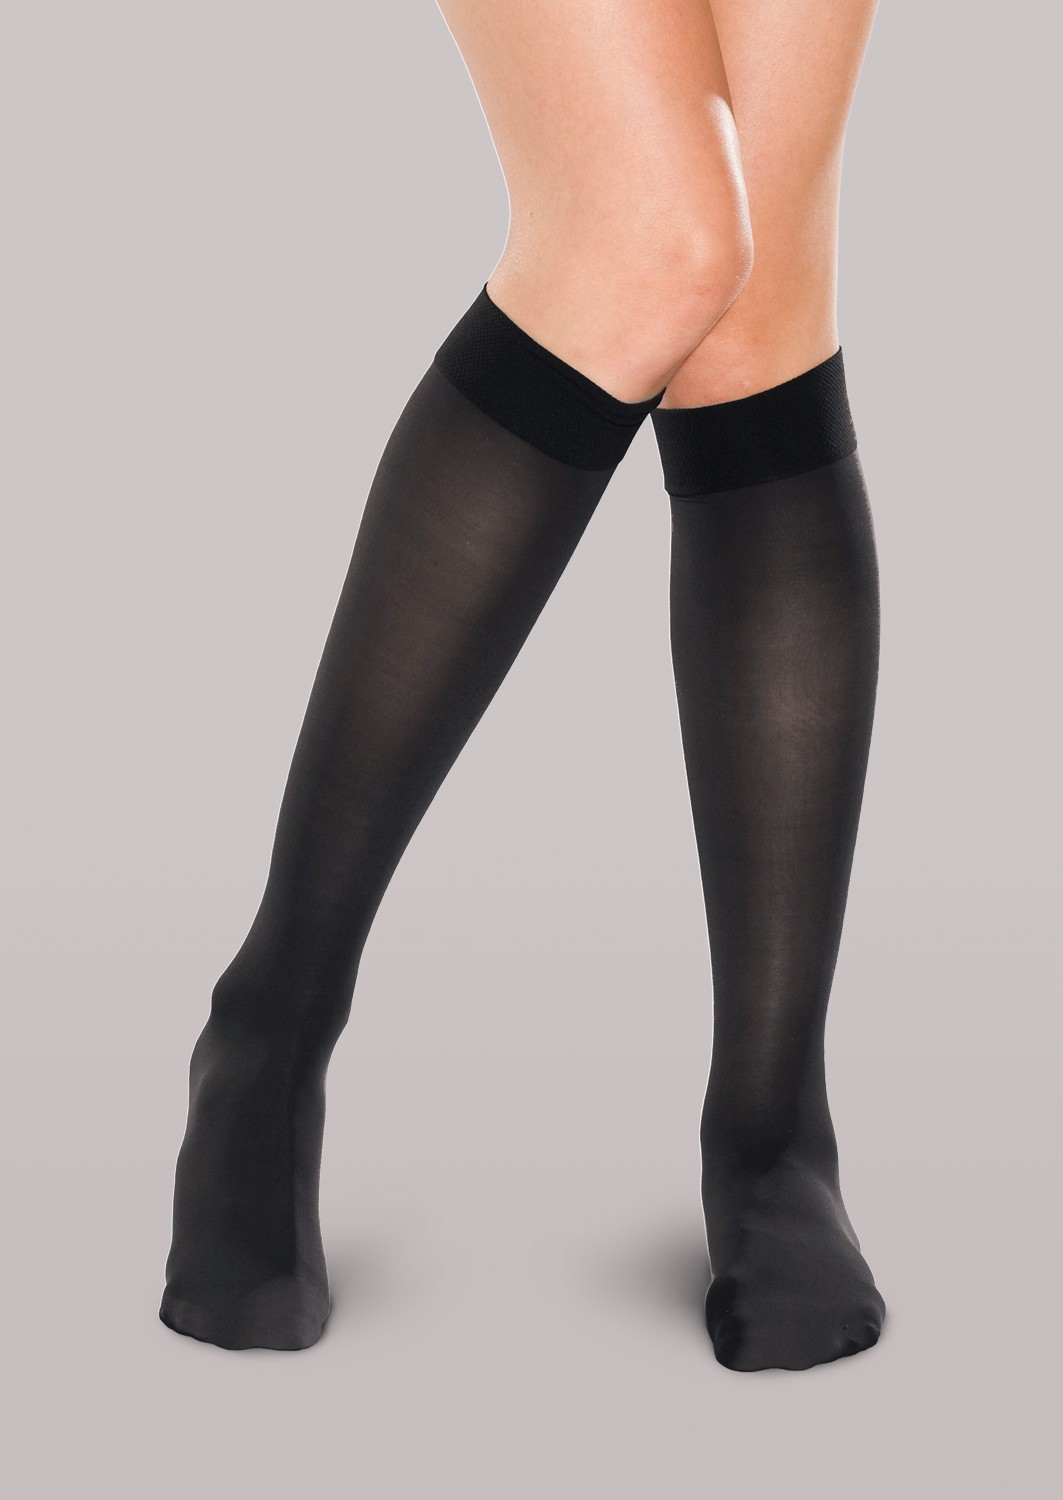 Knee High Stockings at Walgreens. View current promotions and reviews of Knee High Stockings and get free shipping at $ Skip to main content. Your account Sign in or Sigvaris Women's Sheer Trouser Socks Knee High mmHg (1 pr).